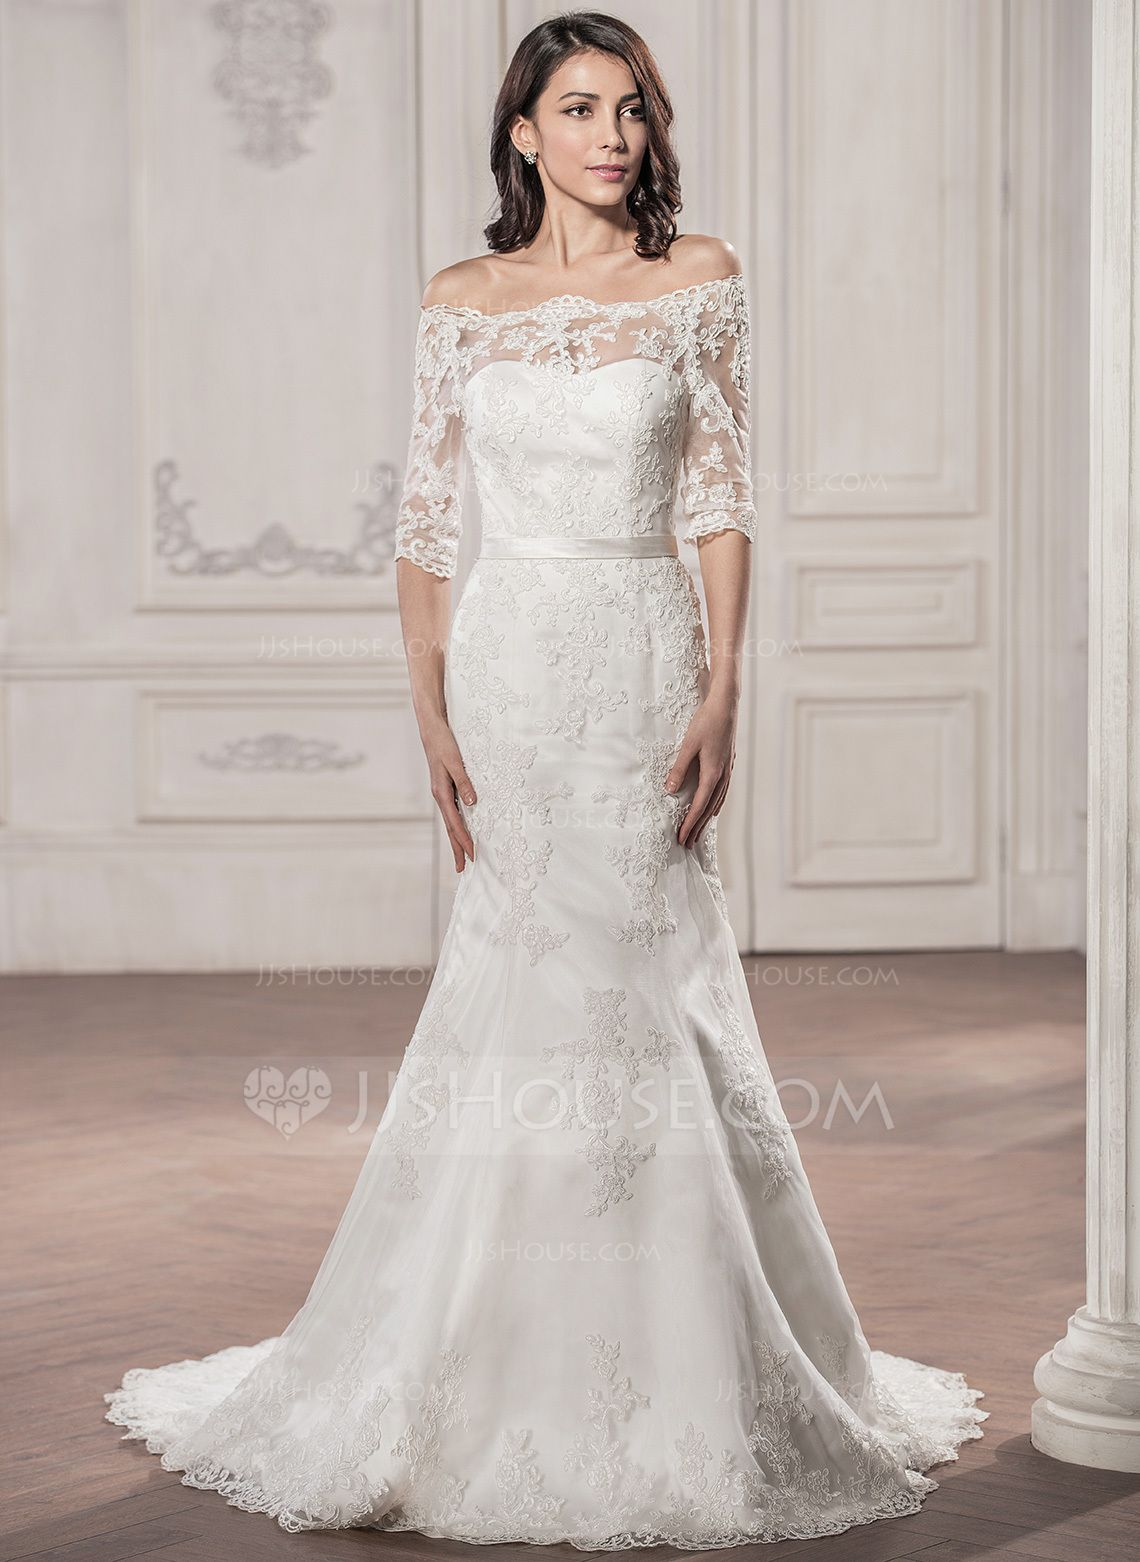 Wedding dress without train  TrumpetMermaid OfftheShoulder Court Train Lace Wedding Dress